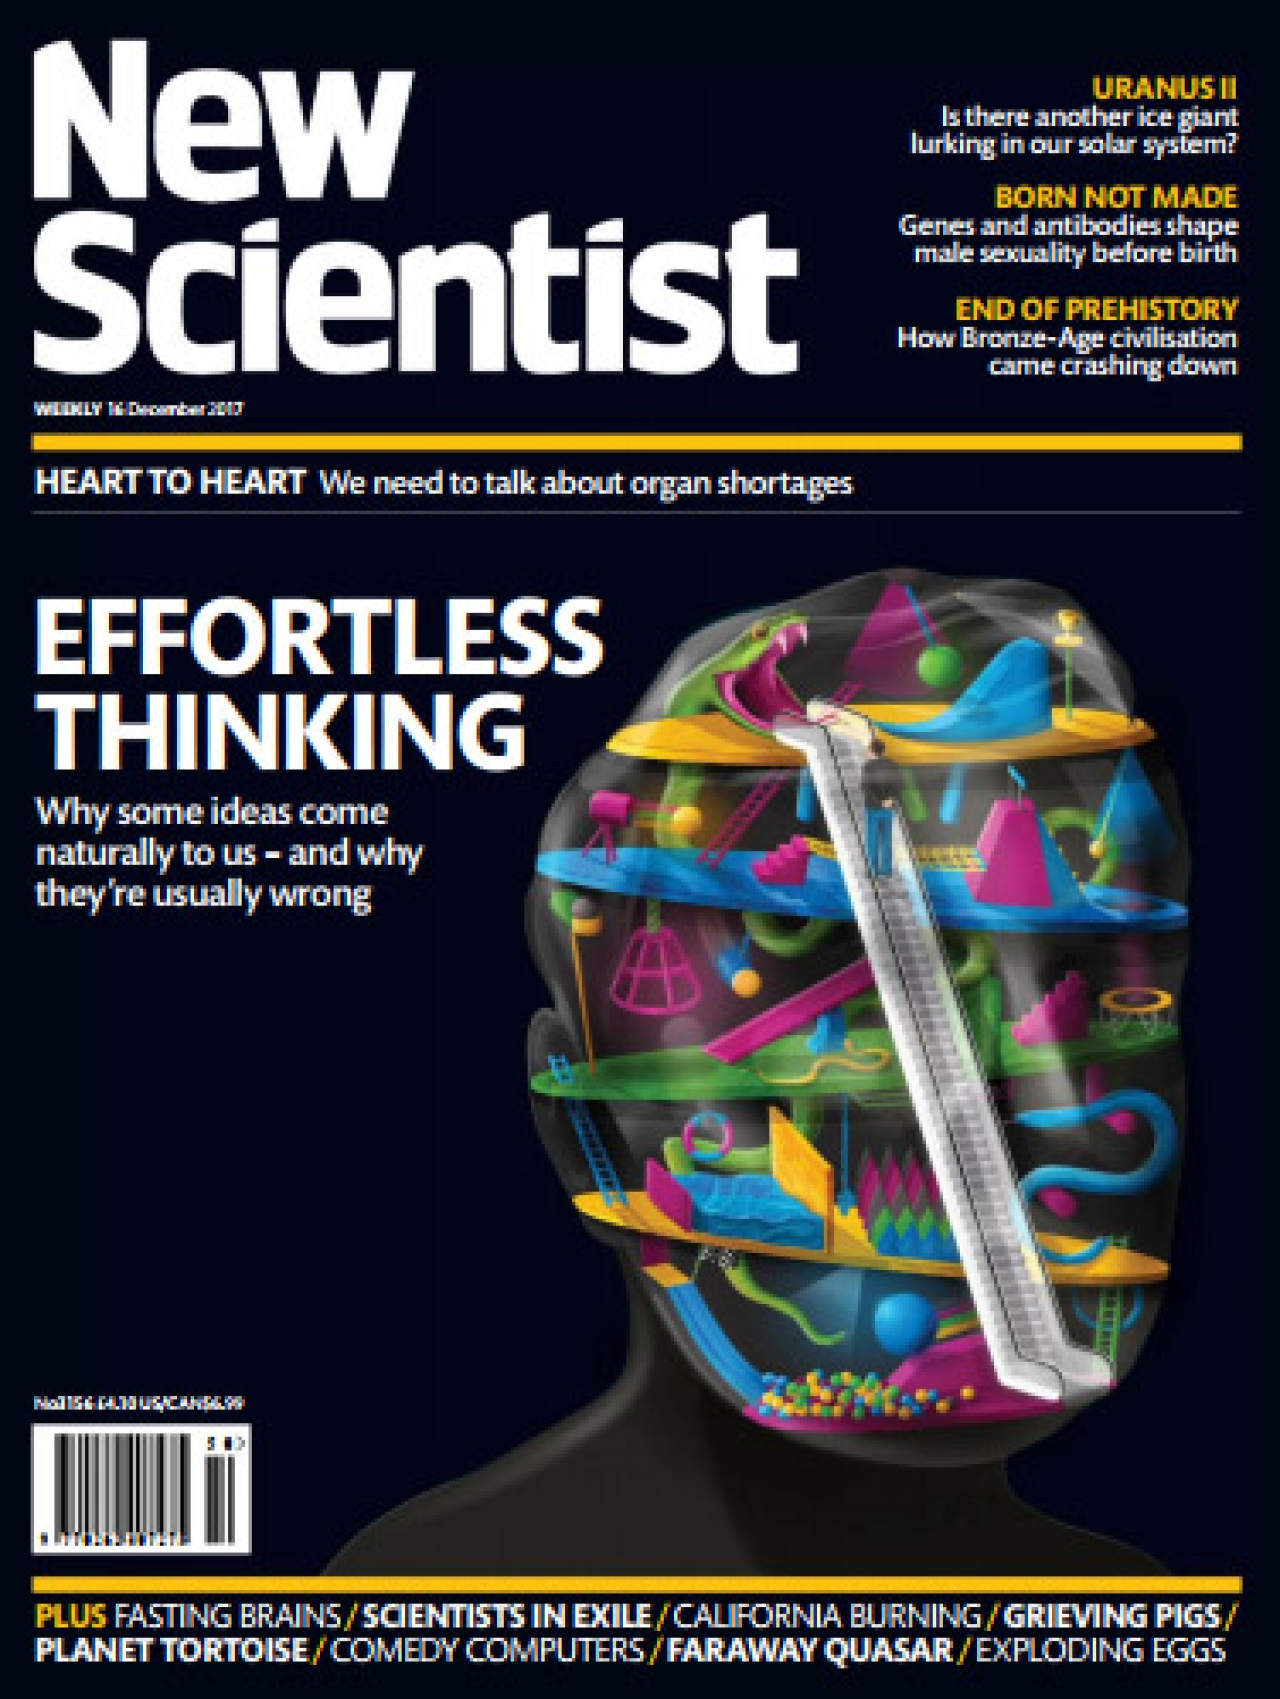 (New Scientist cover)